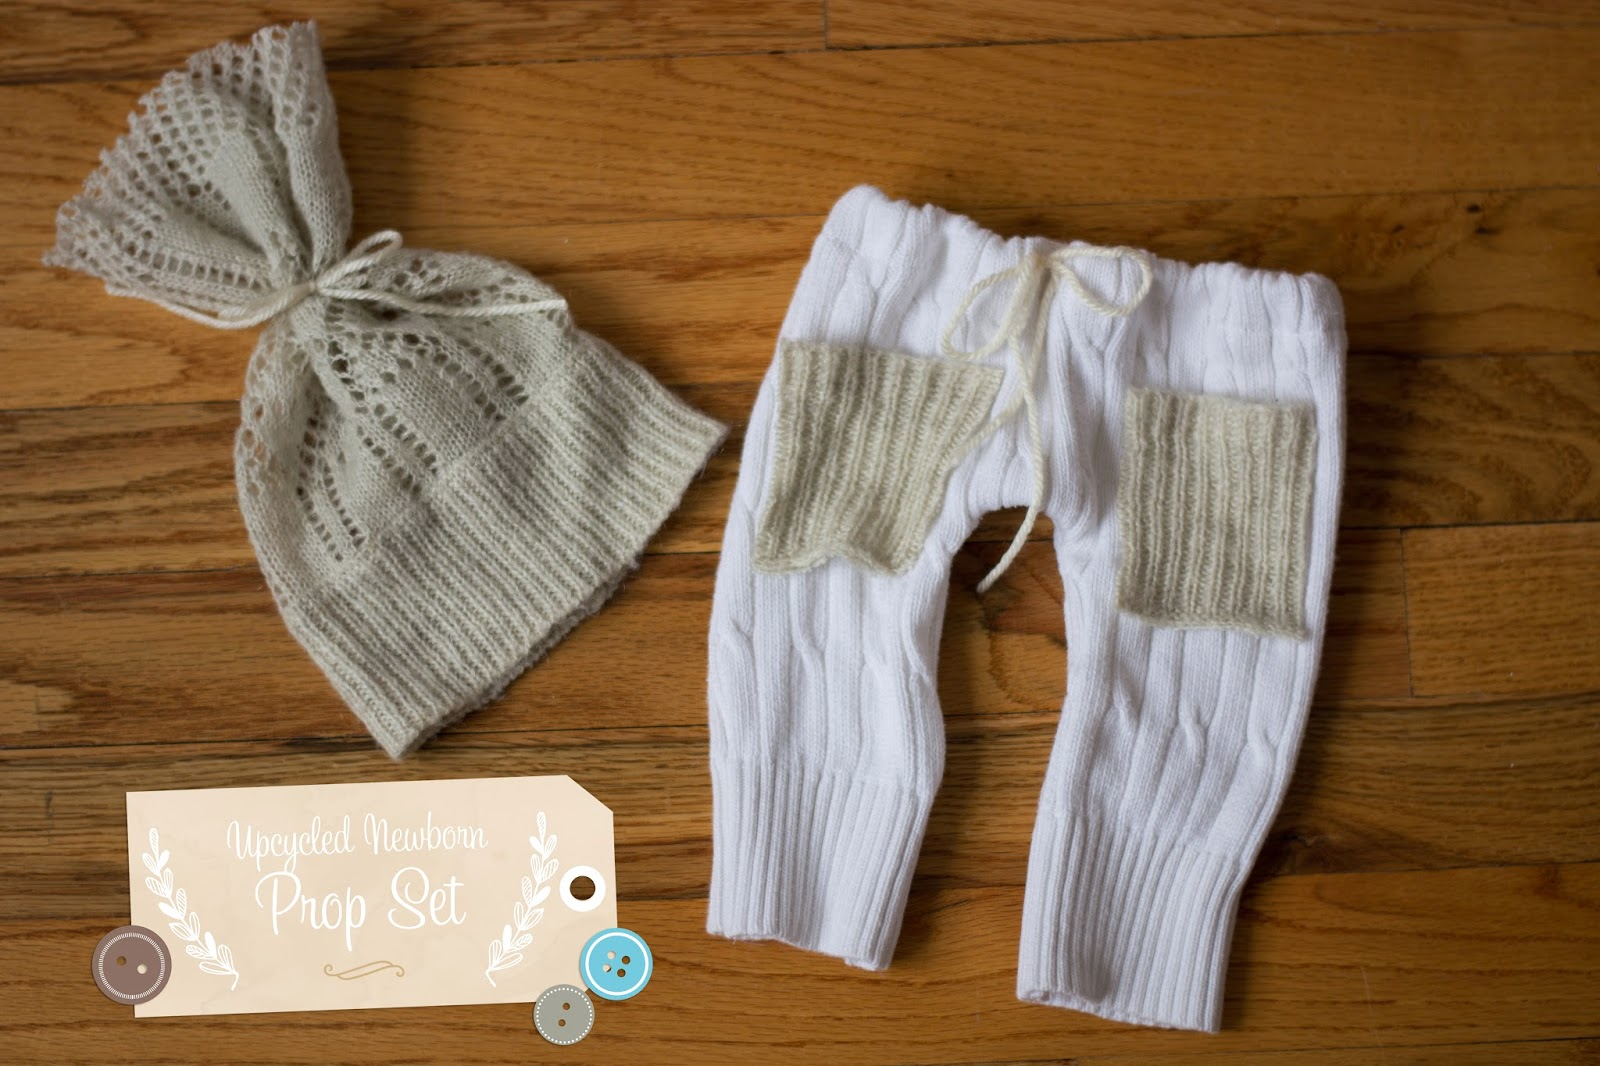 Diy newborn photography prop upcycled pants and hat set tutorial january 6 2014 diy newborn photography prop solutioingenieria Image collections